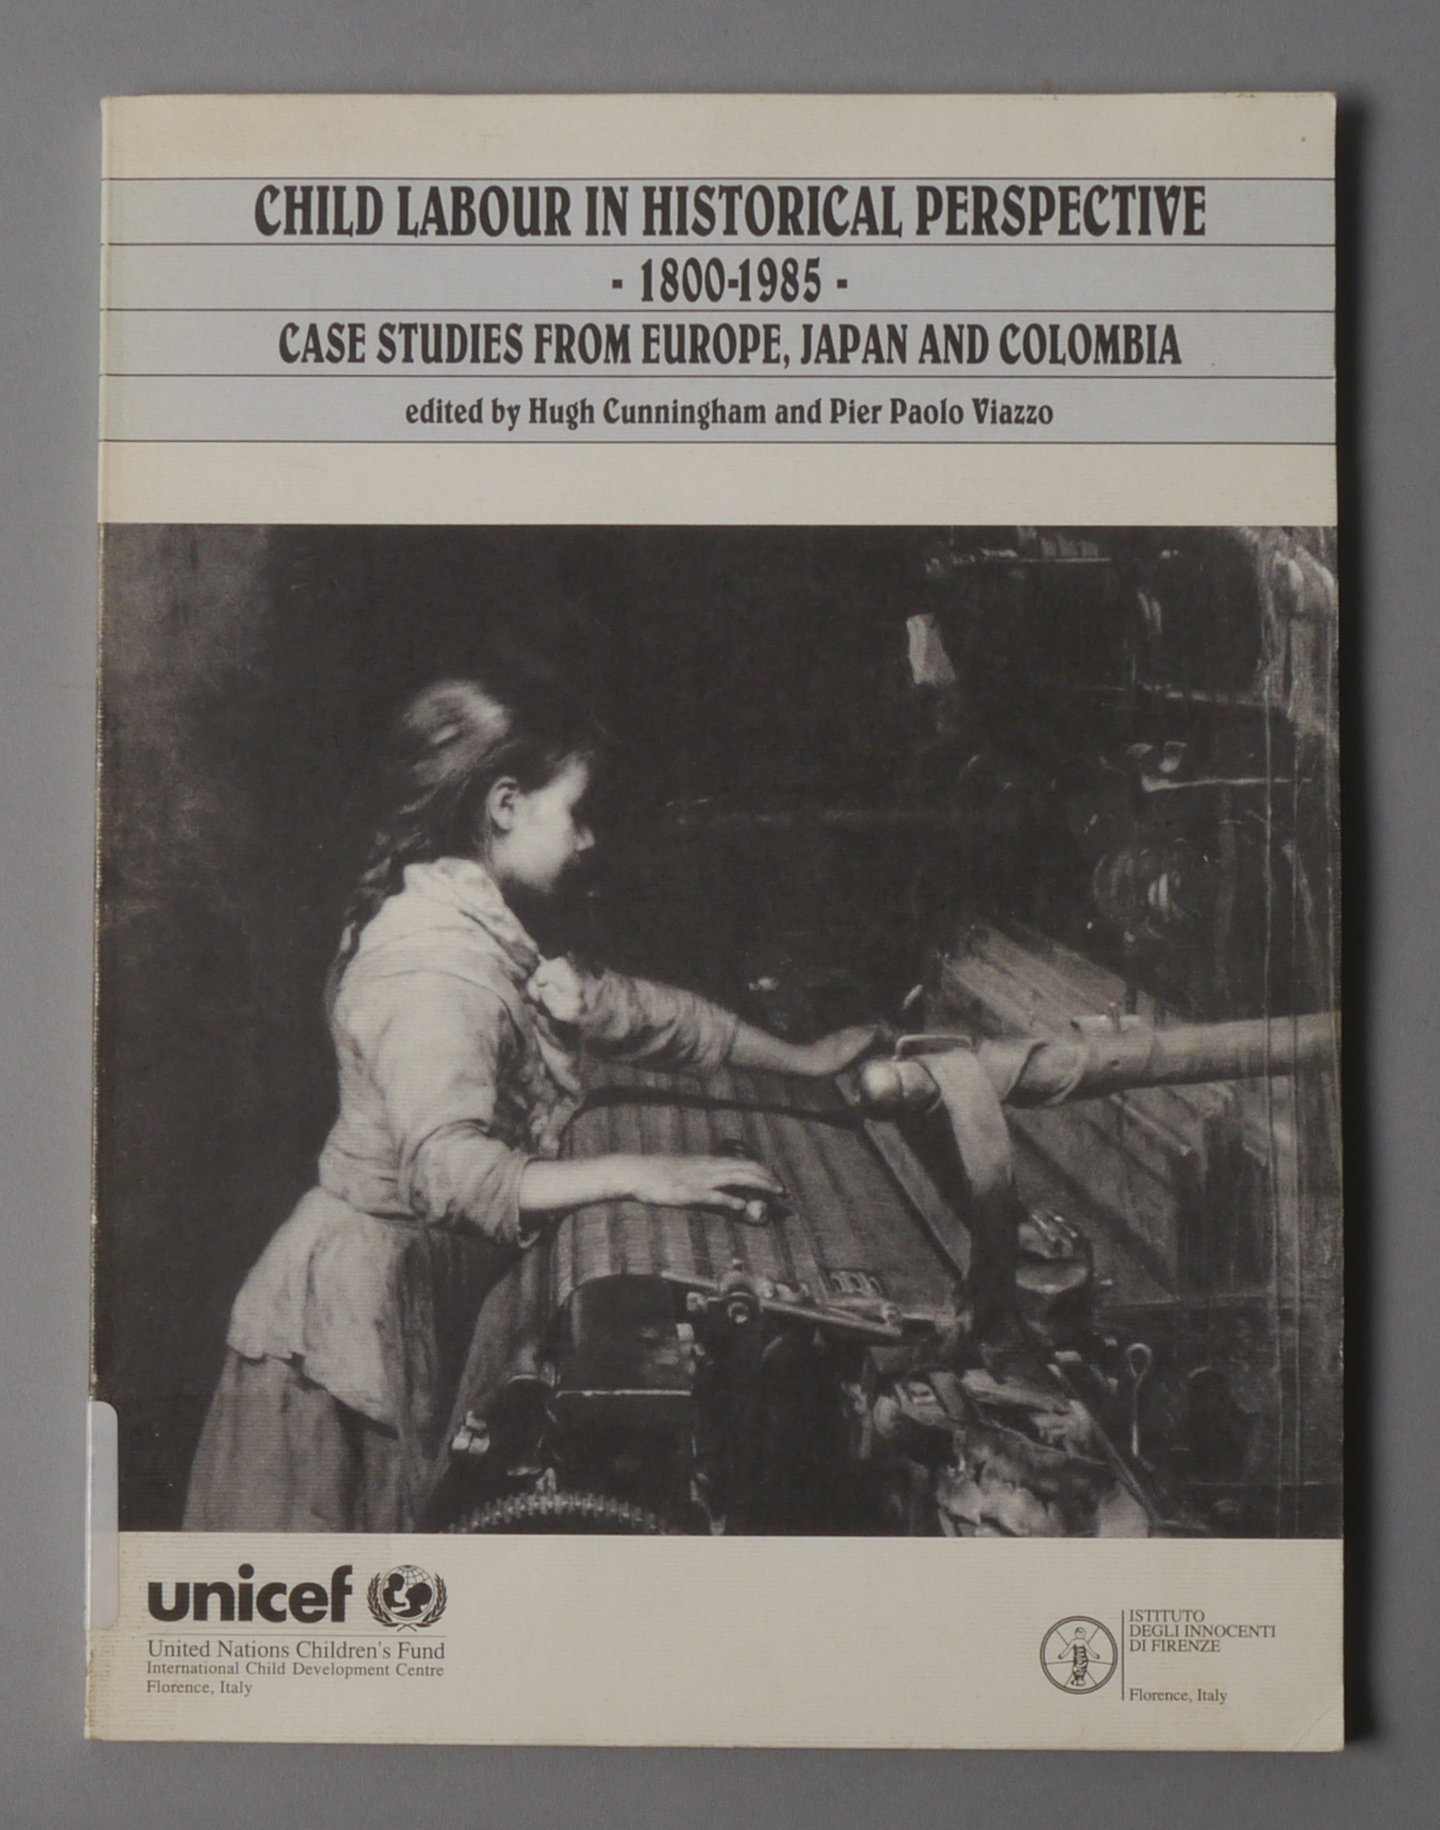 Child Labour In Historical Perspective 1800-1985: Case Studies From Europe, Japan and Colombia.